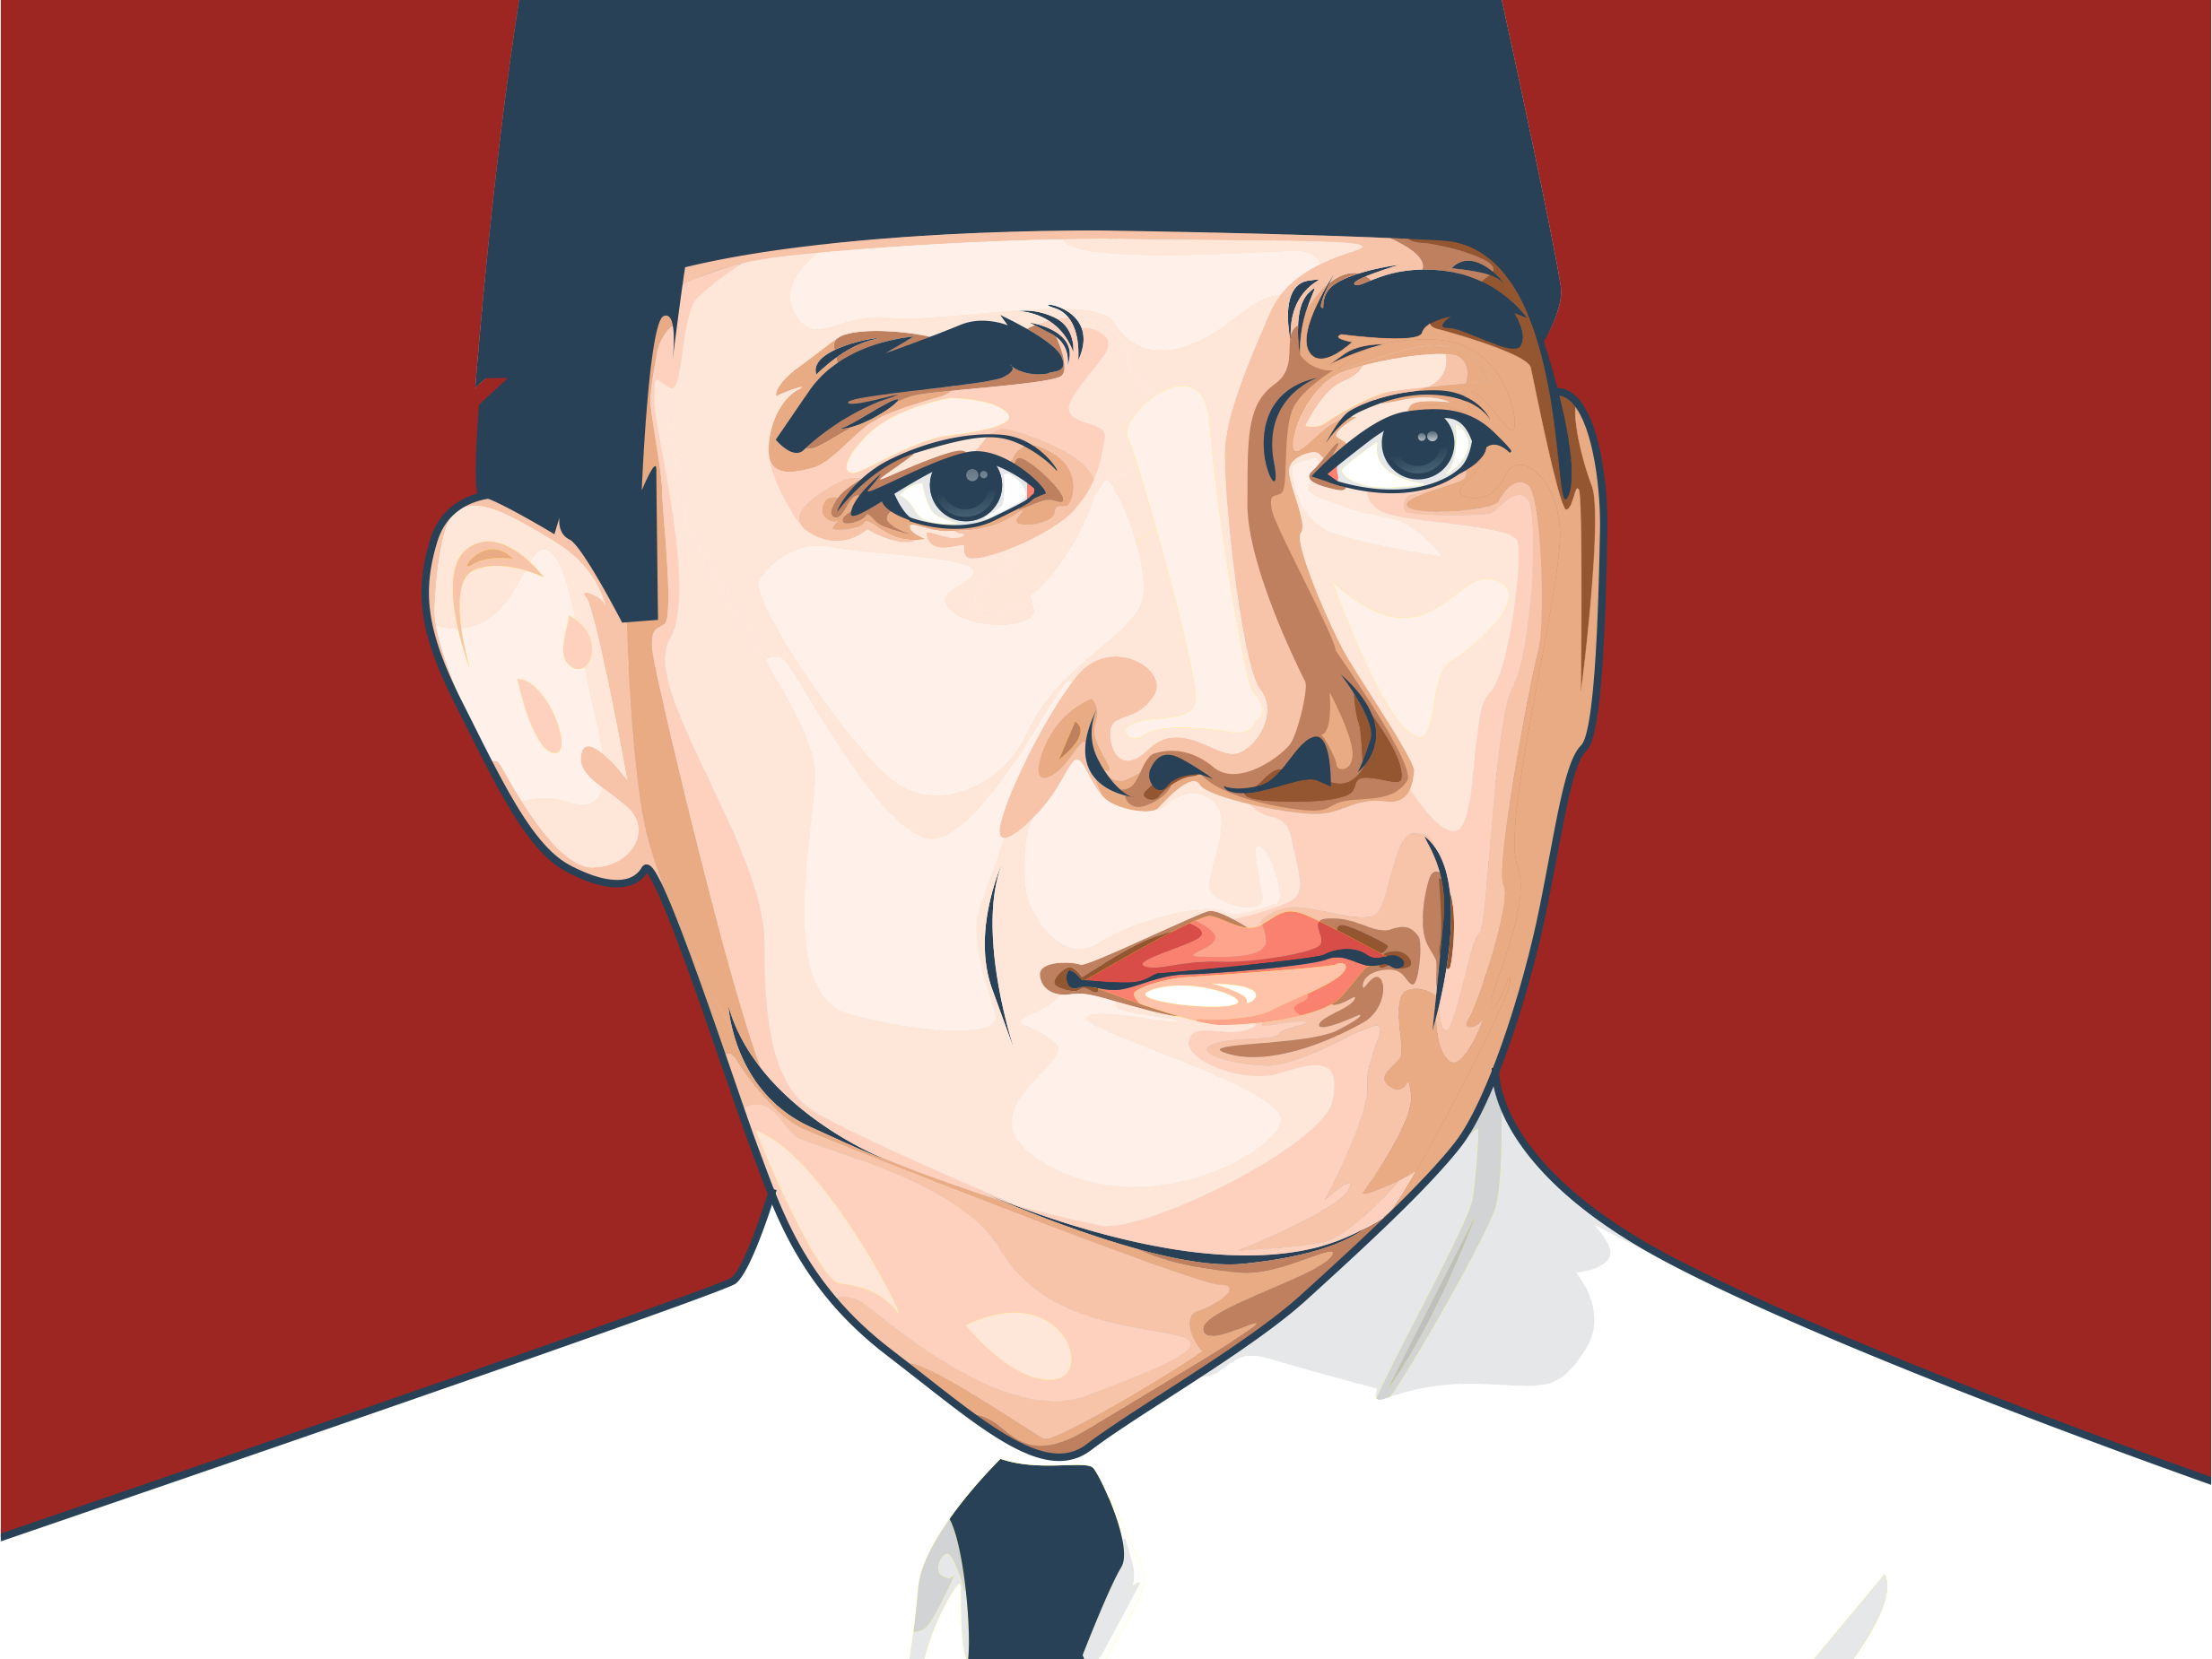 soekarno by wicaksono ariyan on dribbble soekarno by wicaksono ariyan on dribbble